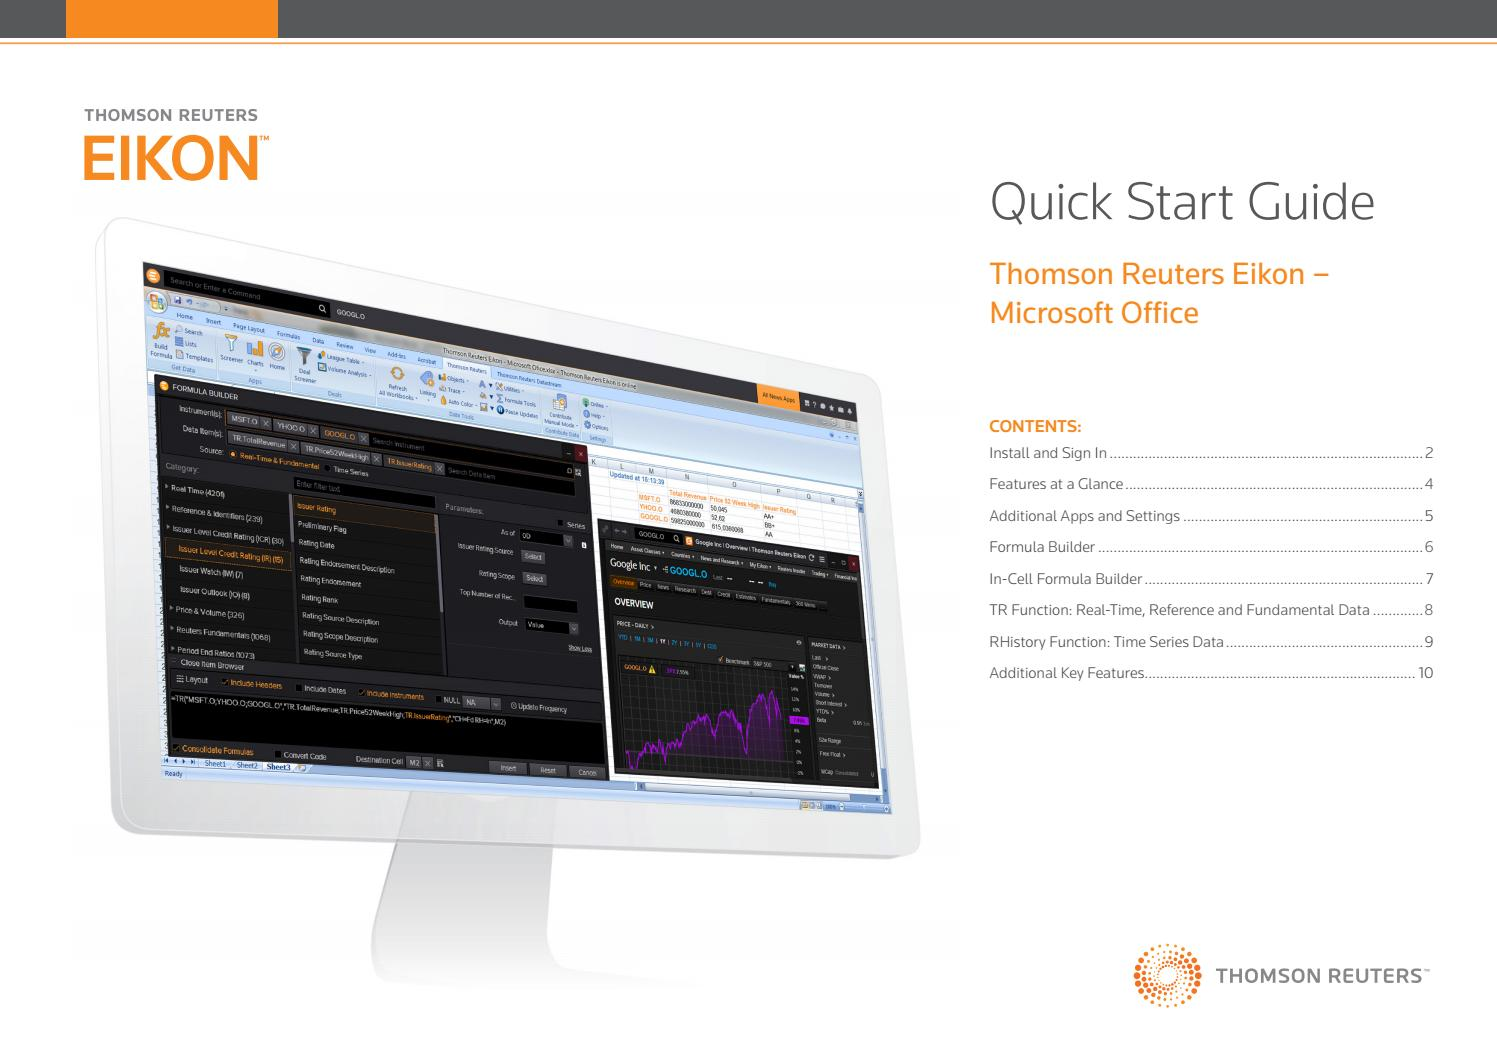 Thomson Reuters EIKON: Excel Add-in Guide by INCEIF